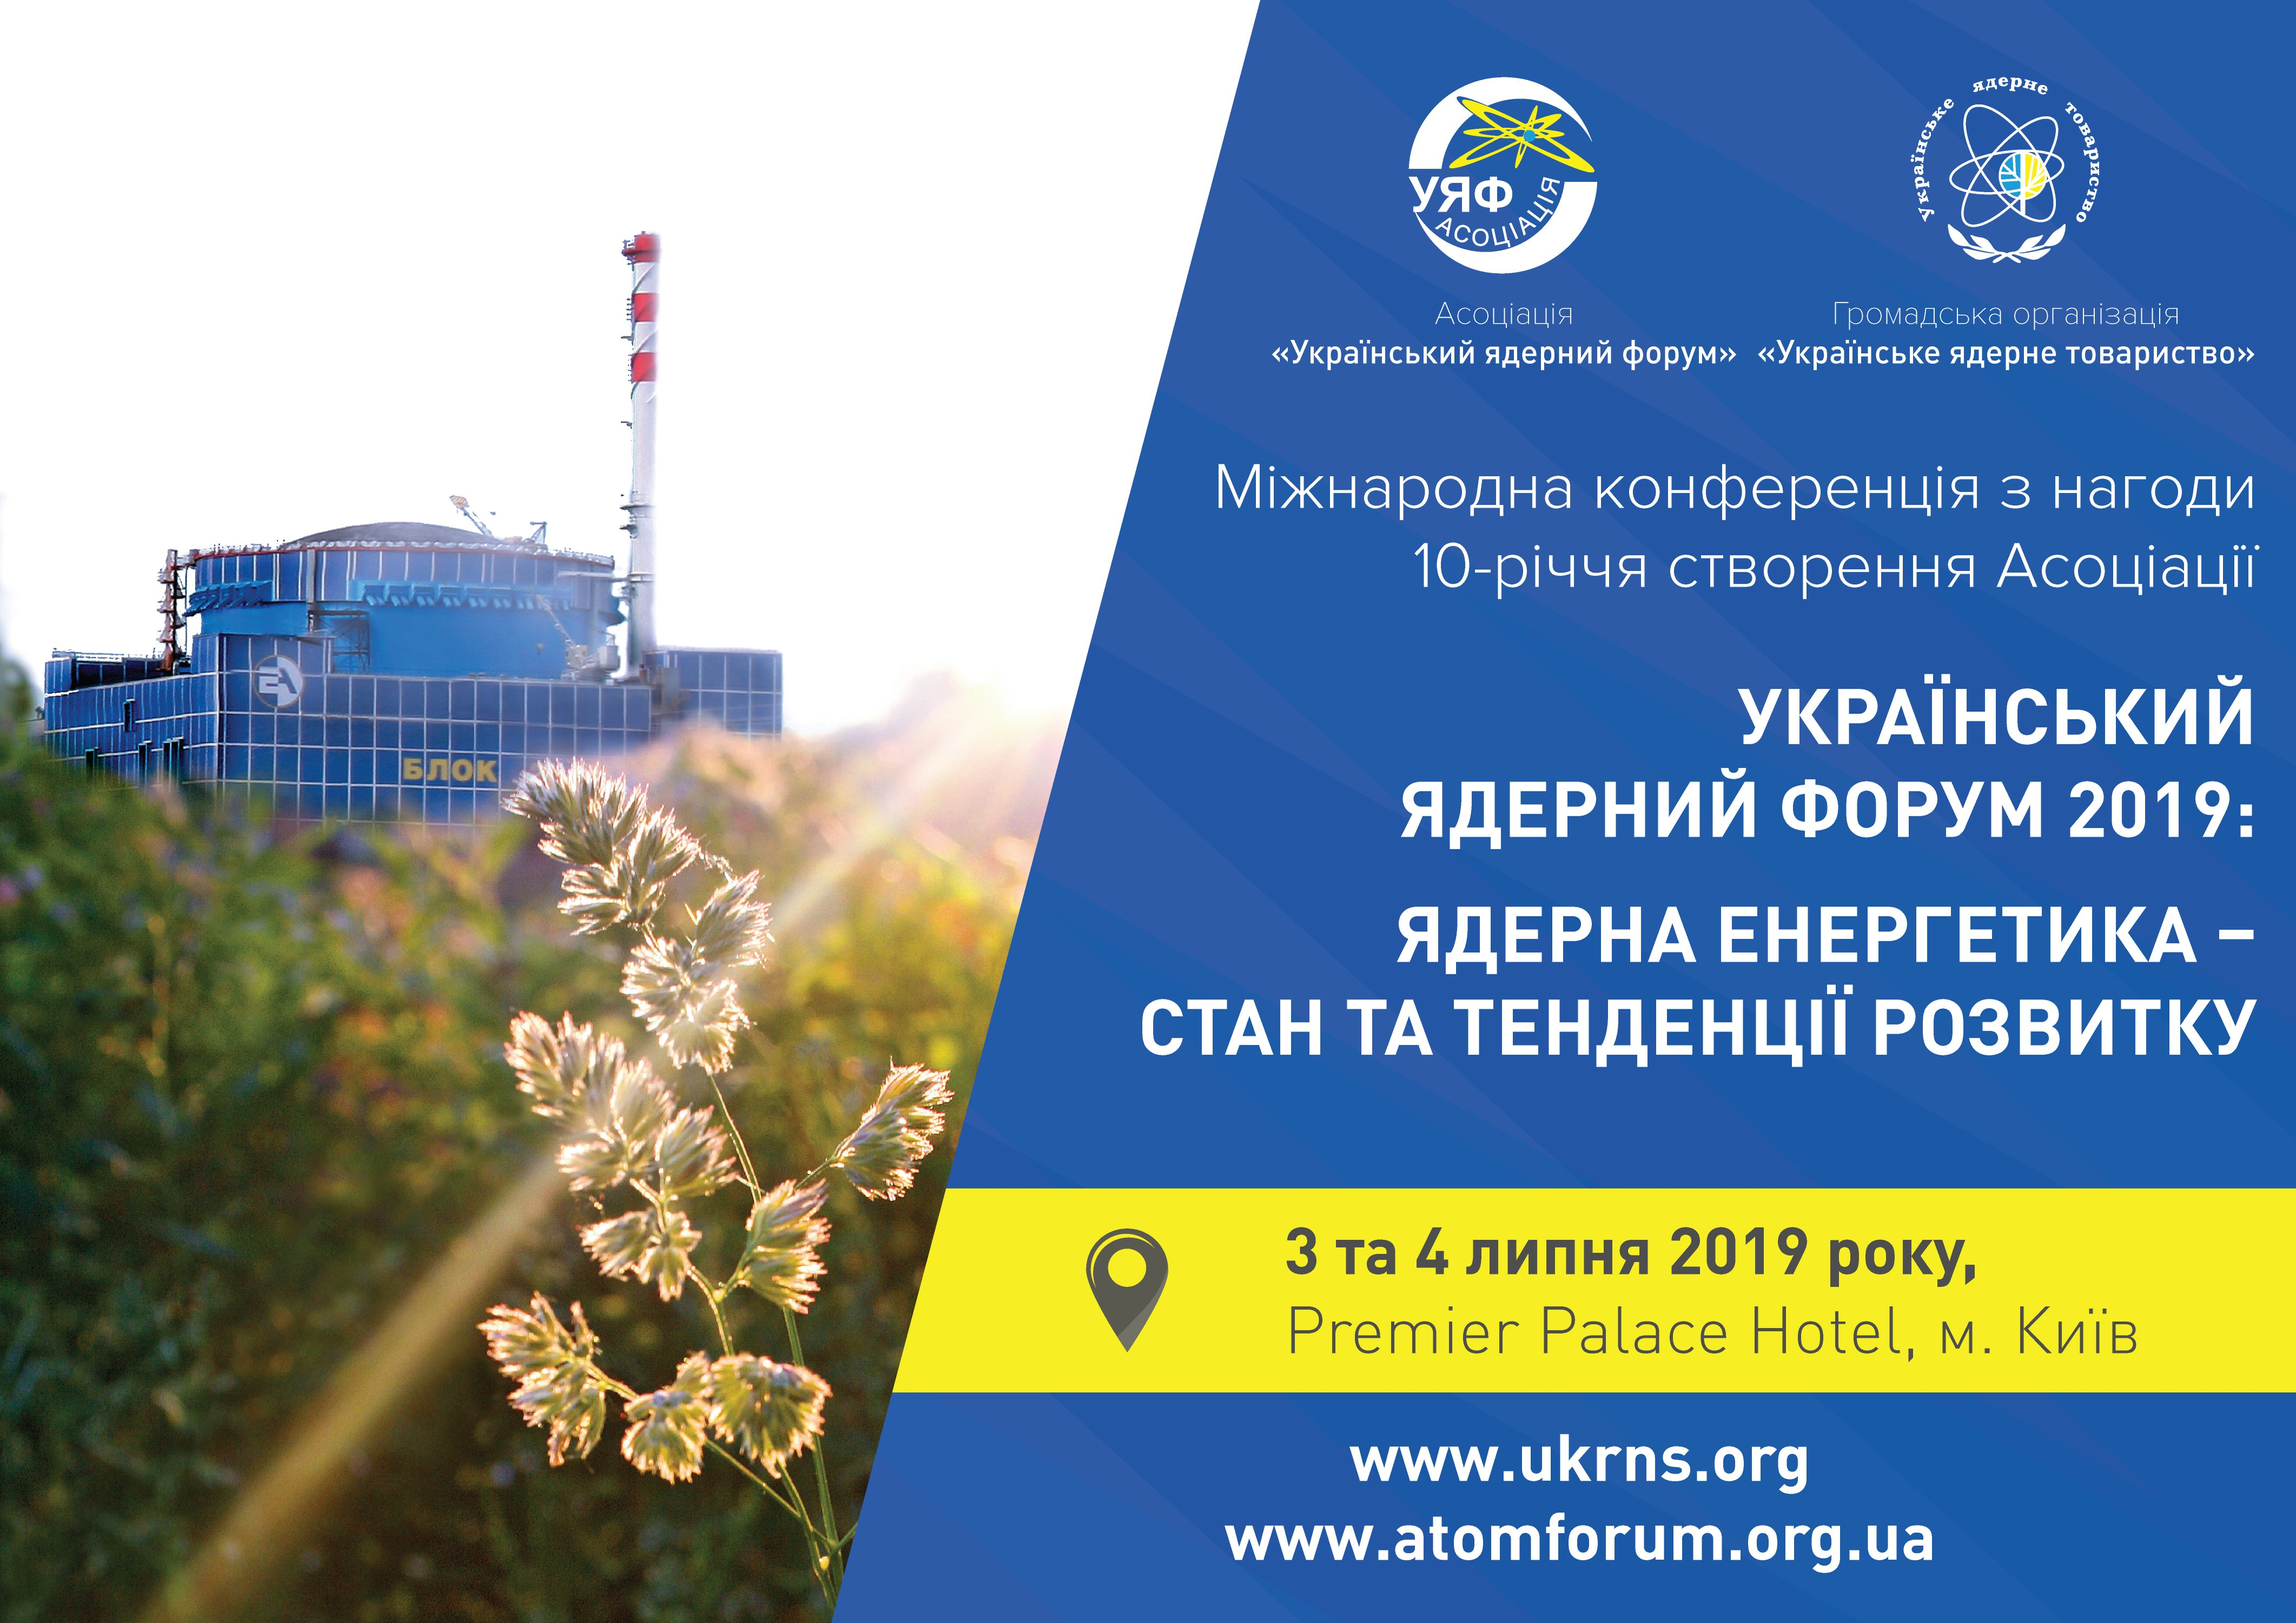 International Conference devoted to the 10-th anniversary of Association  «UKRAINIAN NUCLEAR FORUM - 2019:  NUCLEAR ENERGY – STATE AND TRENDS OF DEVELOPMENT»